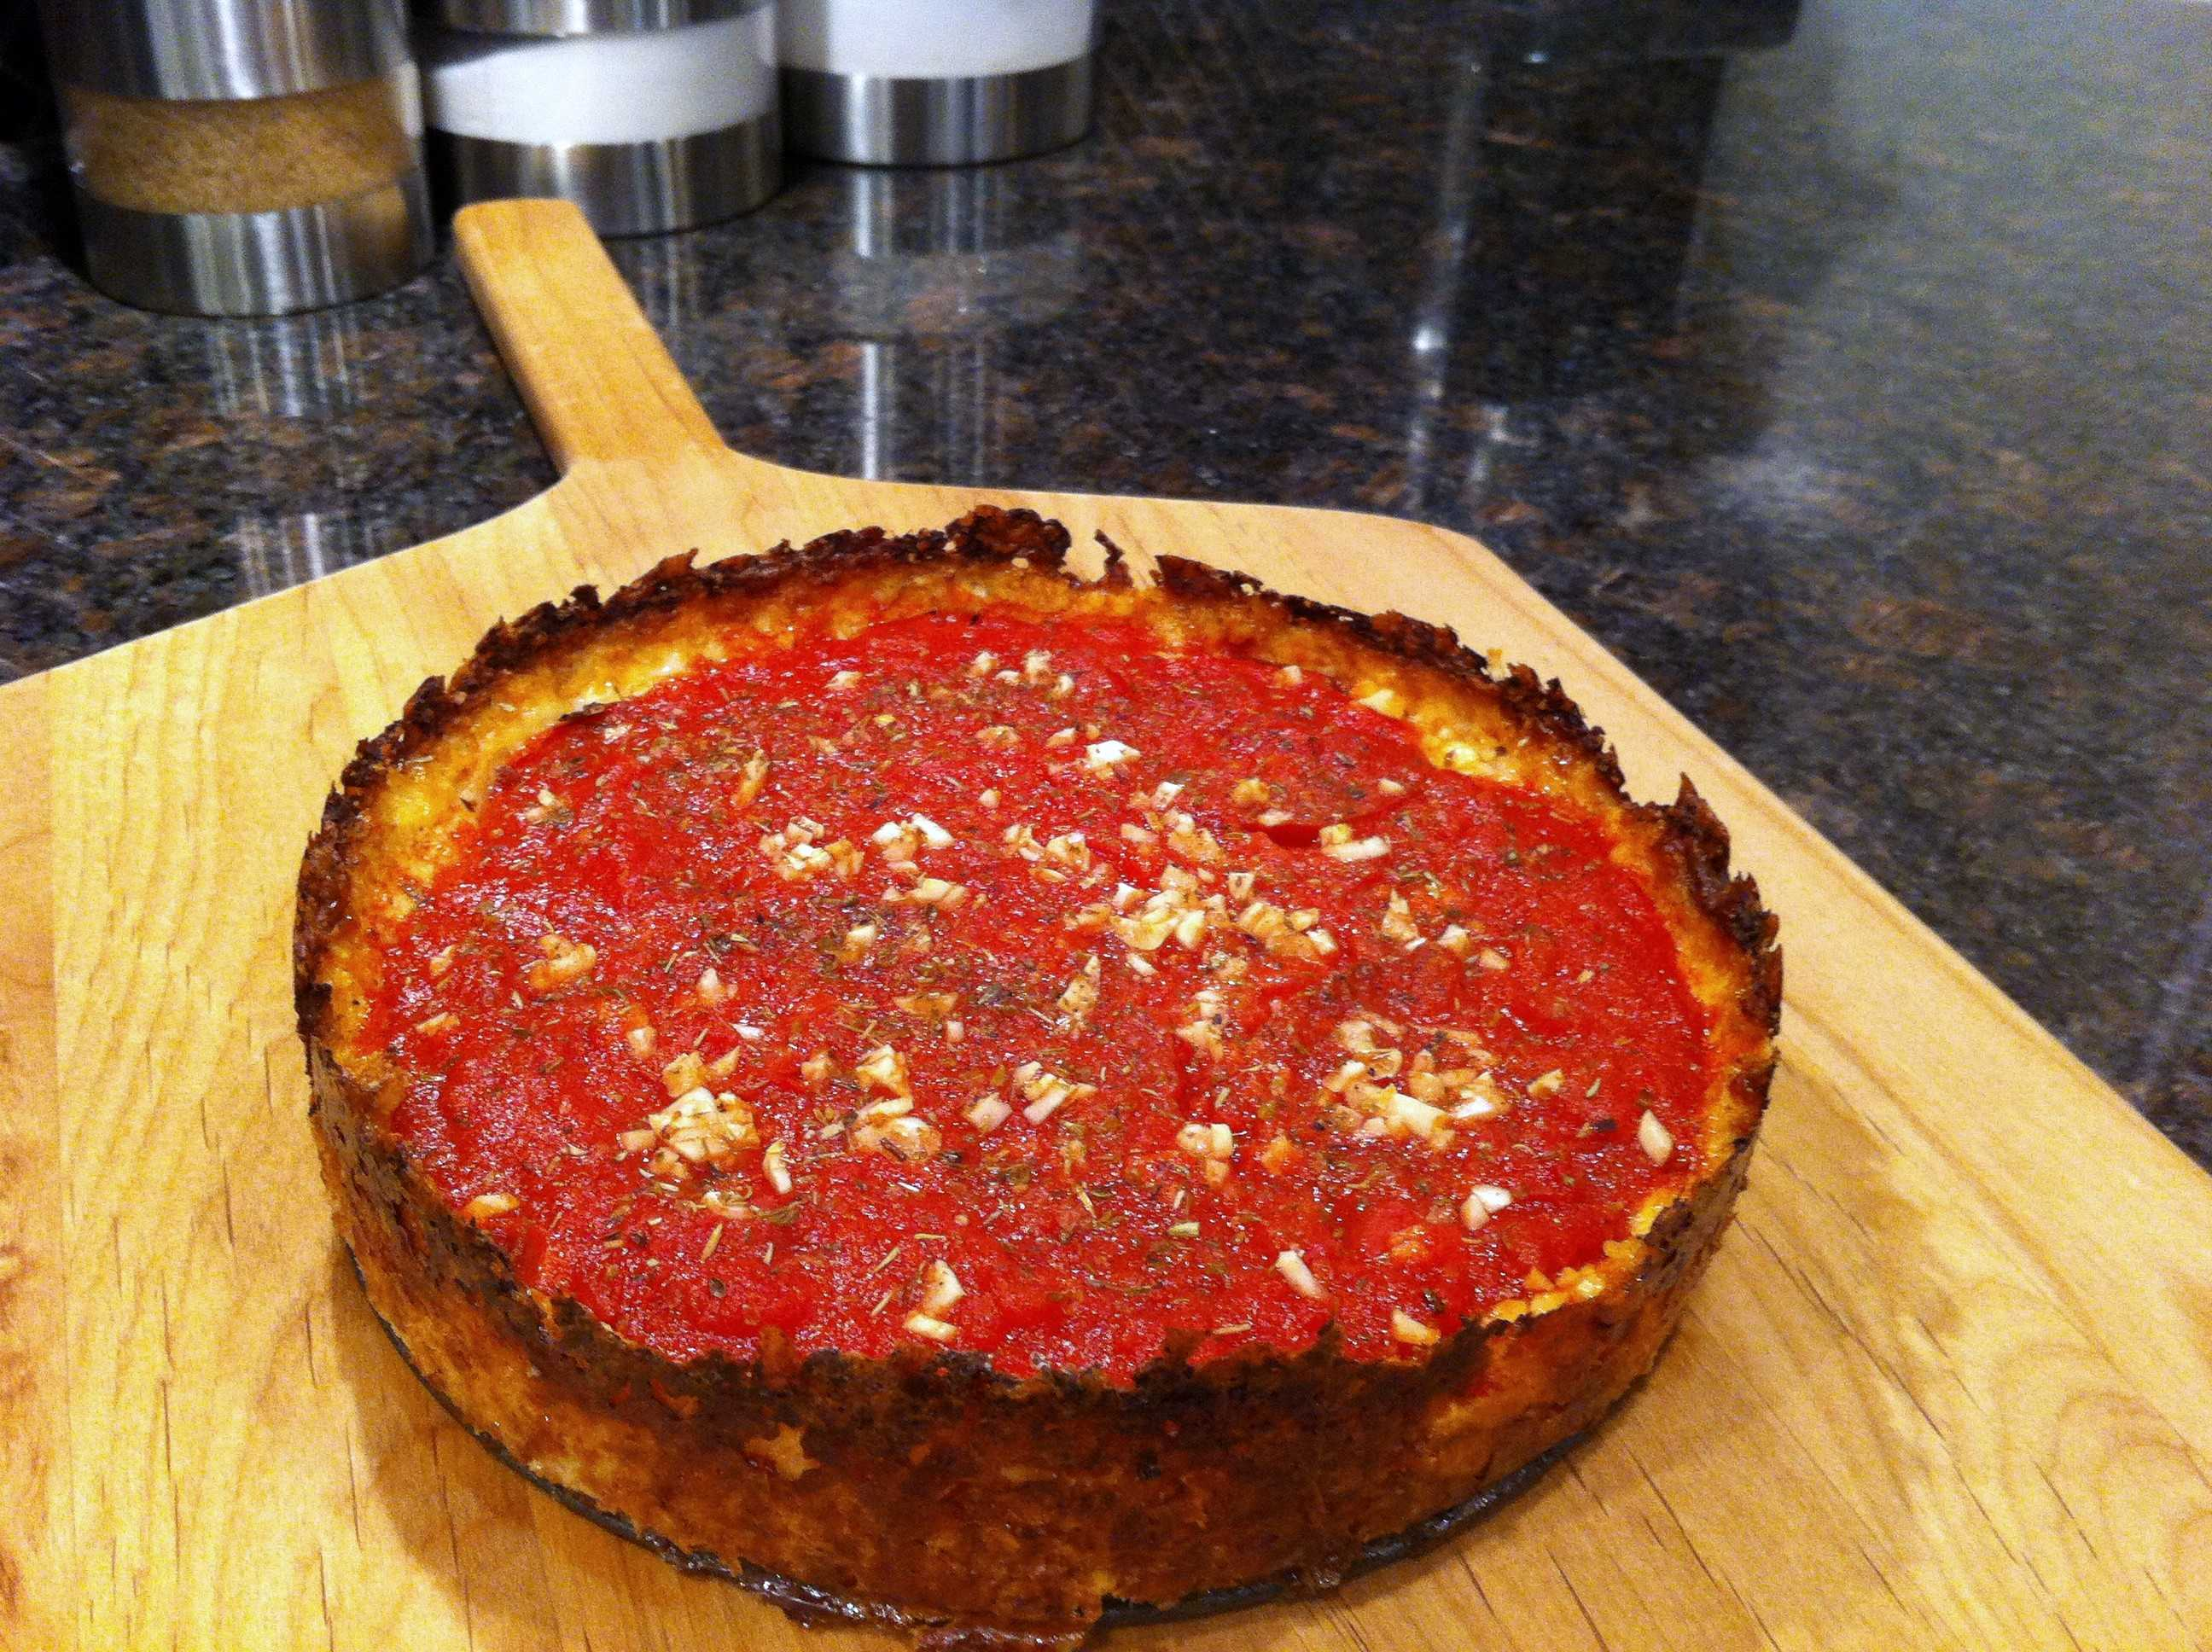 cauliflower-deep-dish-crust-pizza-with-tomato-and-garlic